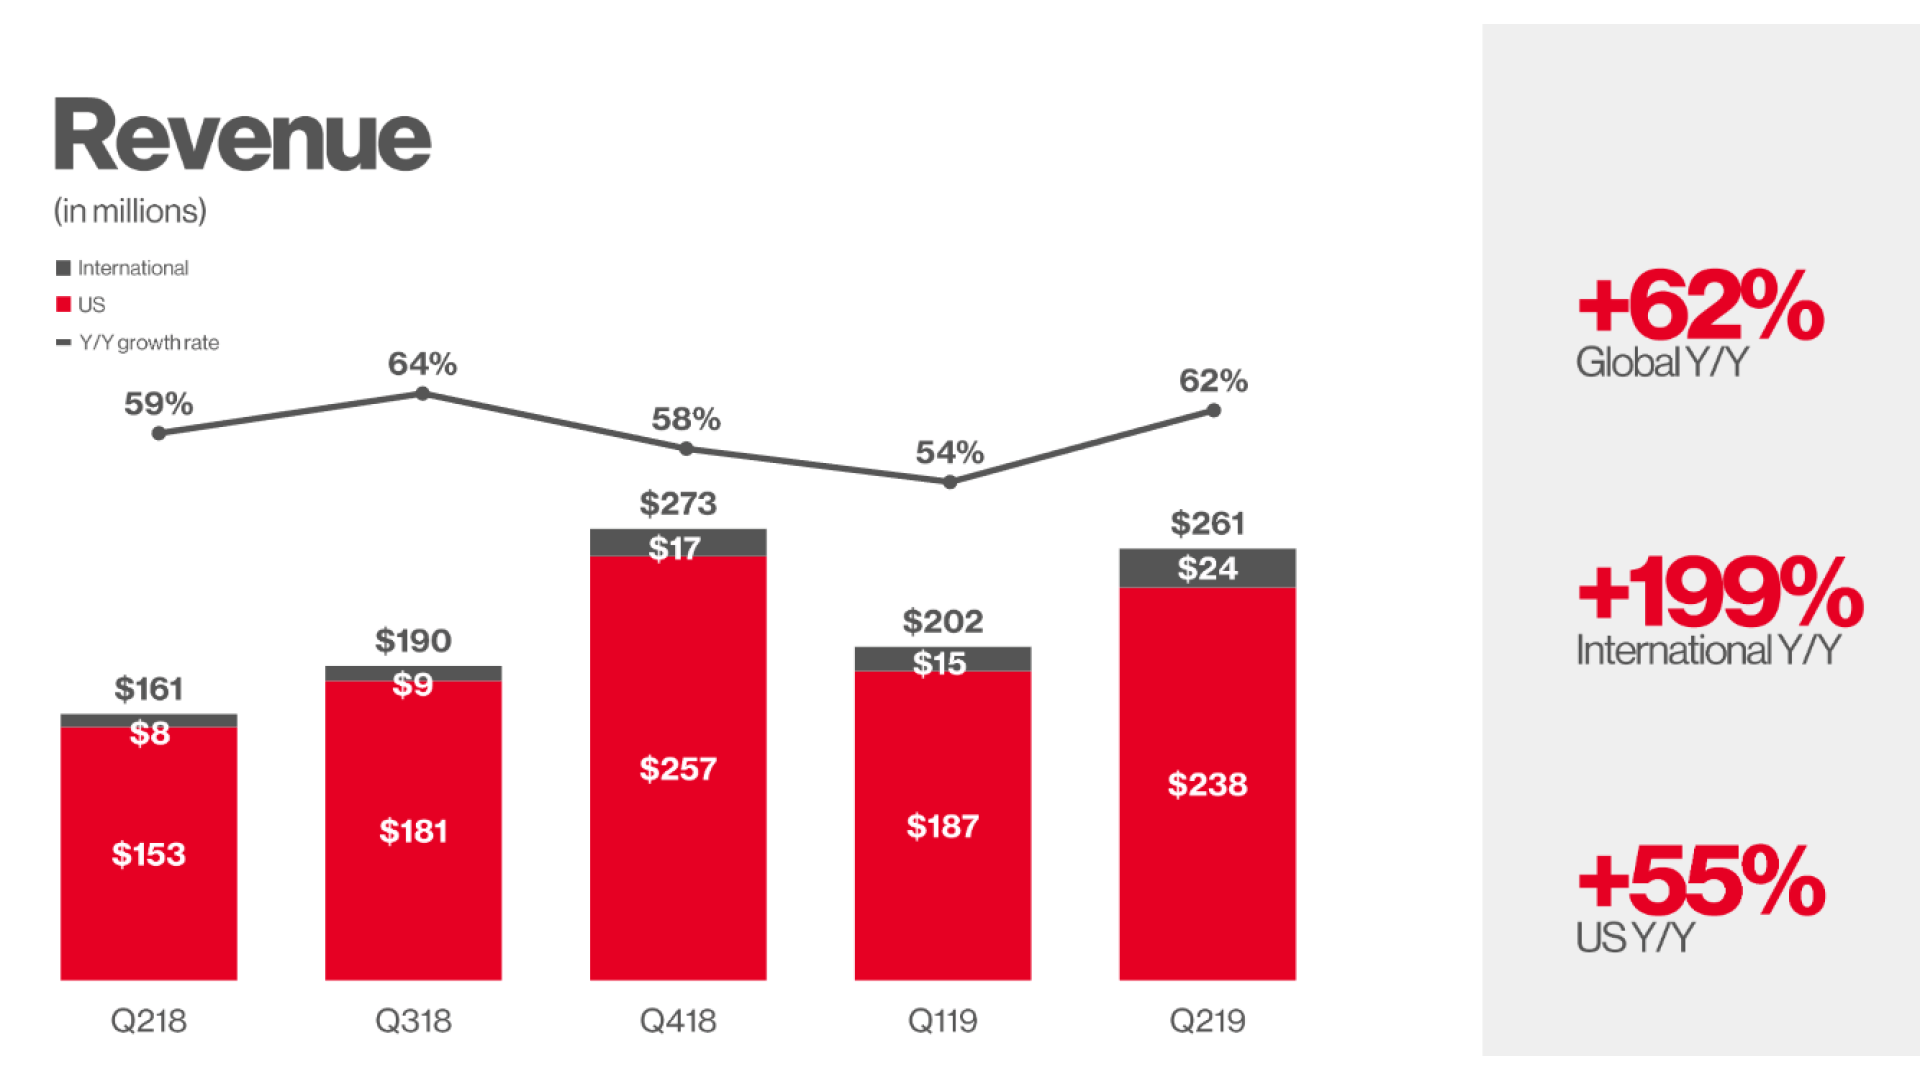 Pinterest revenue jumps 62%, monthly active users reaches 300 million